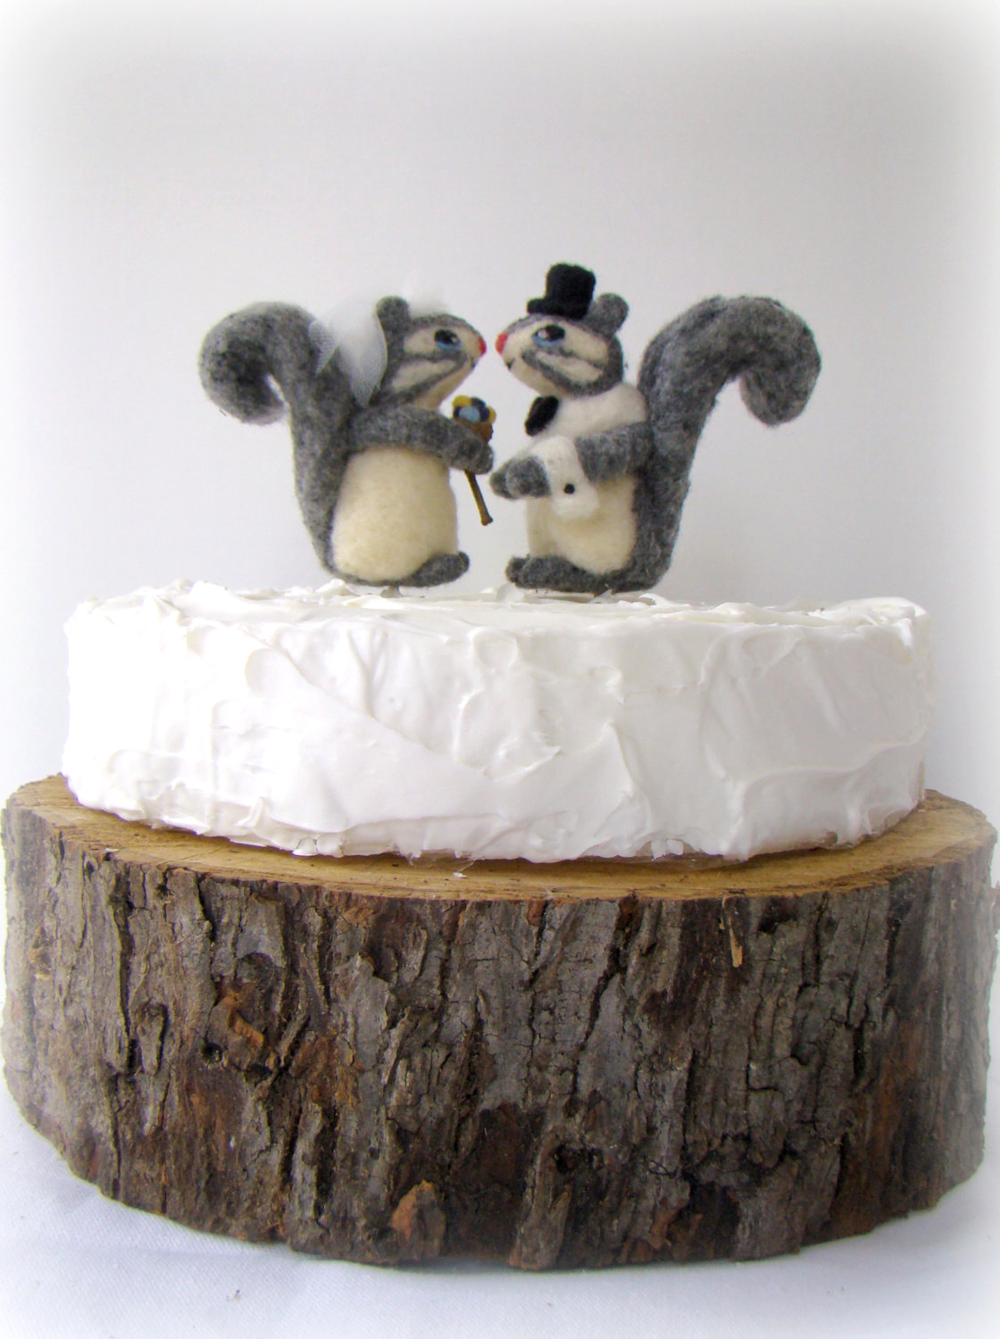 An Adorable Squirrel Wedding Cake Topper - perfect for fall weddings